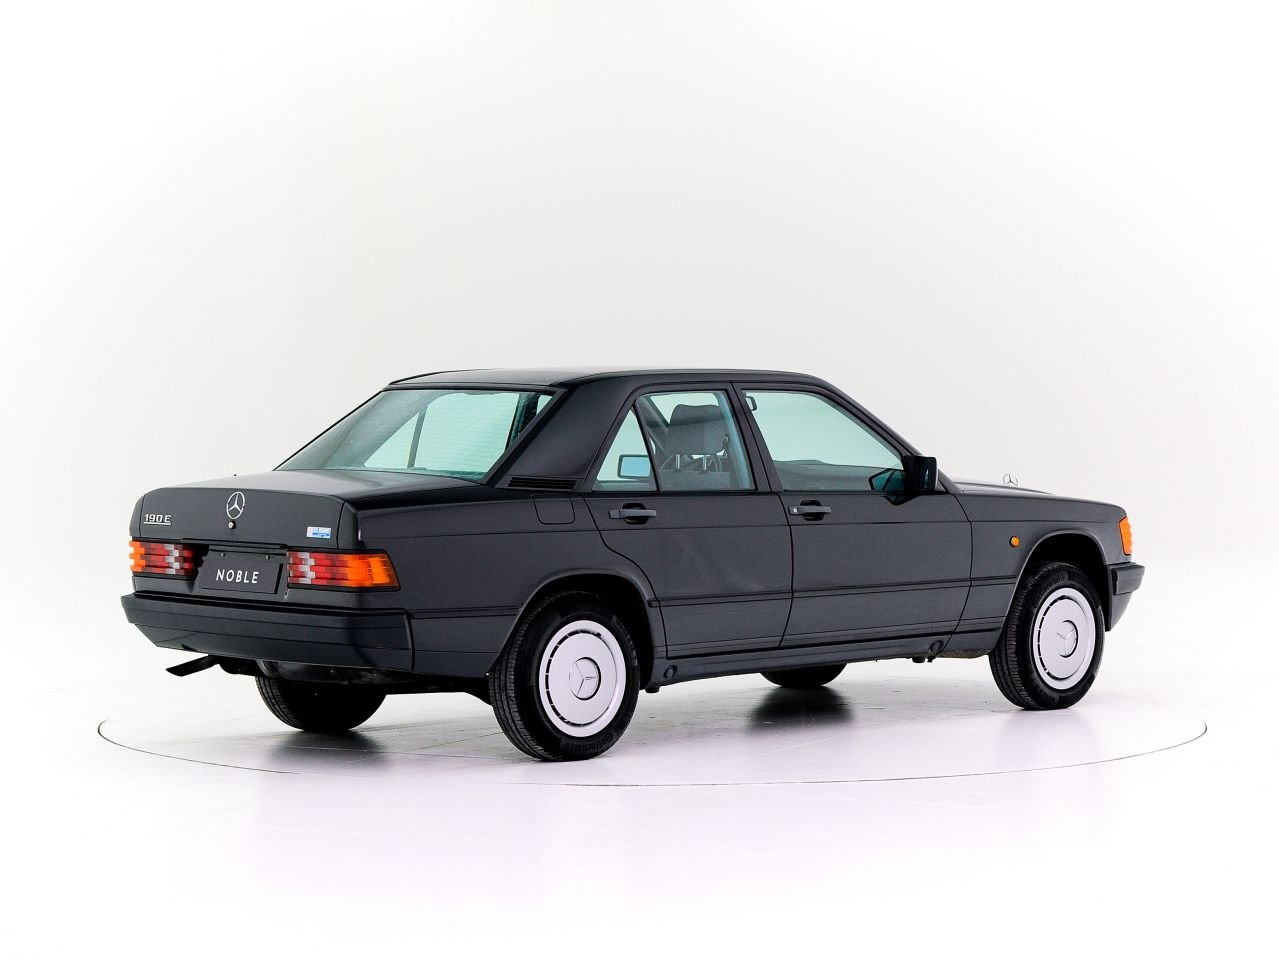 1986 MERCEDES 190E For Sale by Auction (picture 1 of 4)